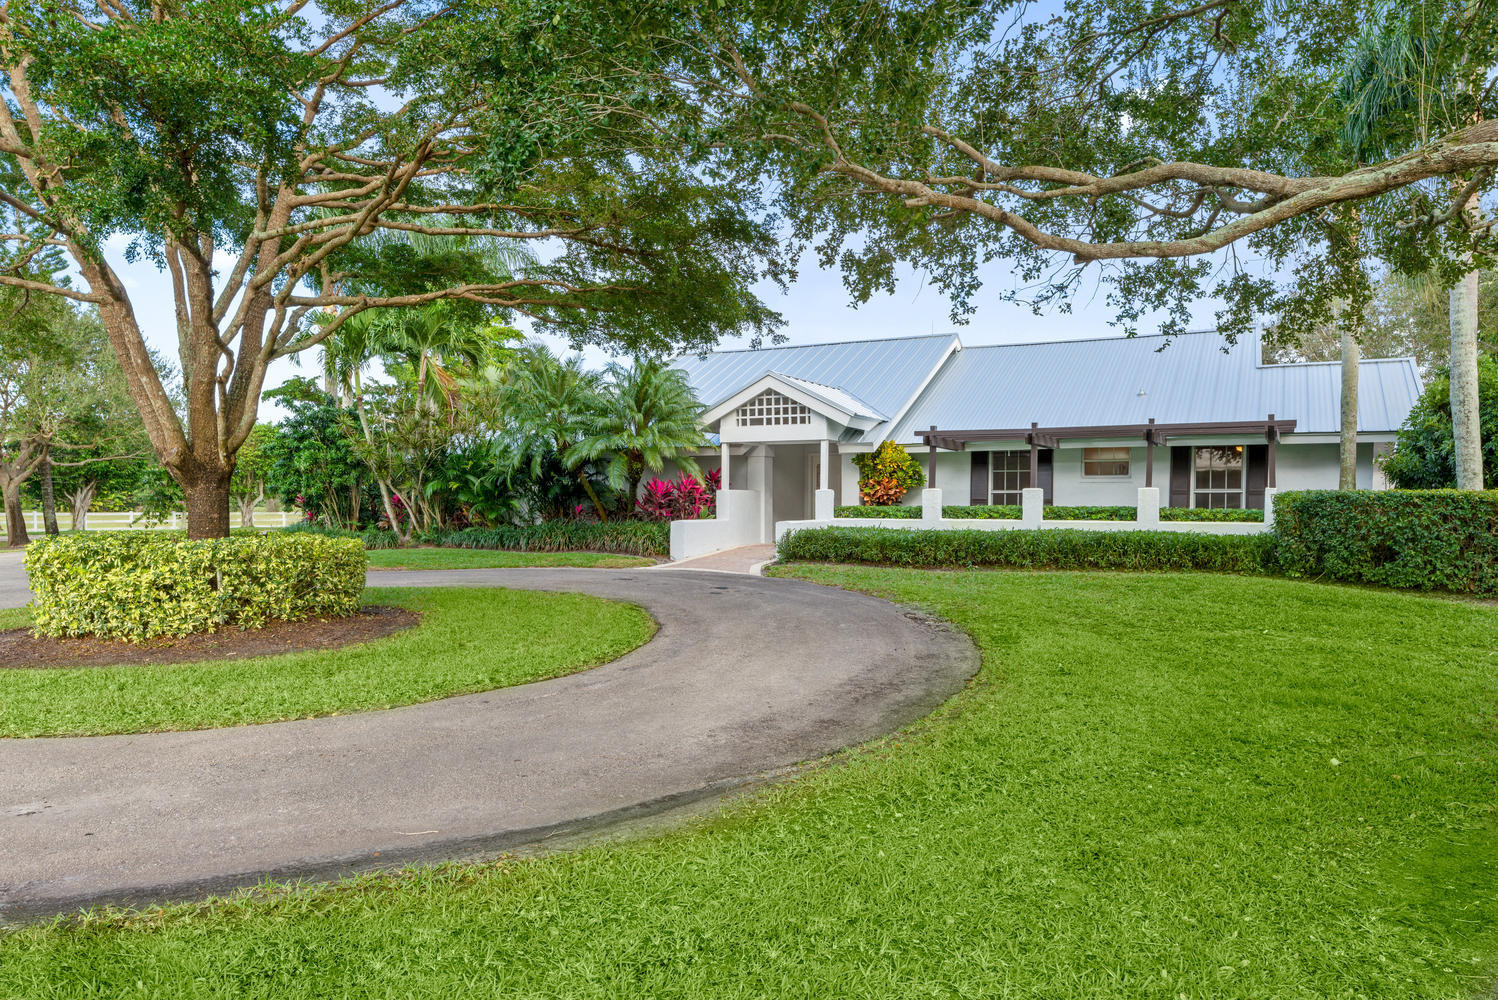 15260 Sunnyland Lane, Wellington, Florida 33414, 3 Bedrooms Bedrooms, ,2.1 BathroomsBathrooms,Barn,For Rent,Sunnyland,1,RX-10627576